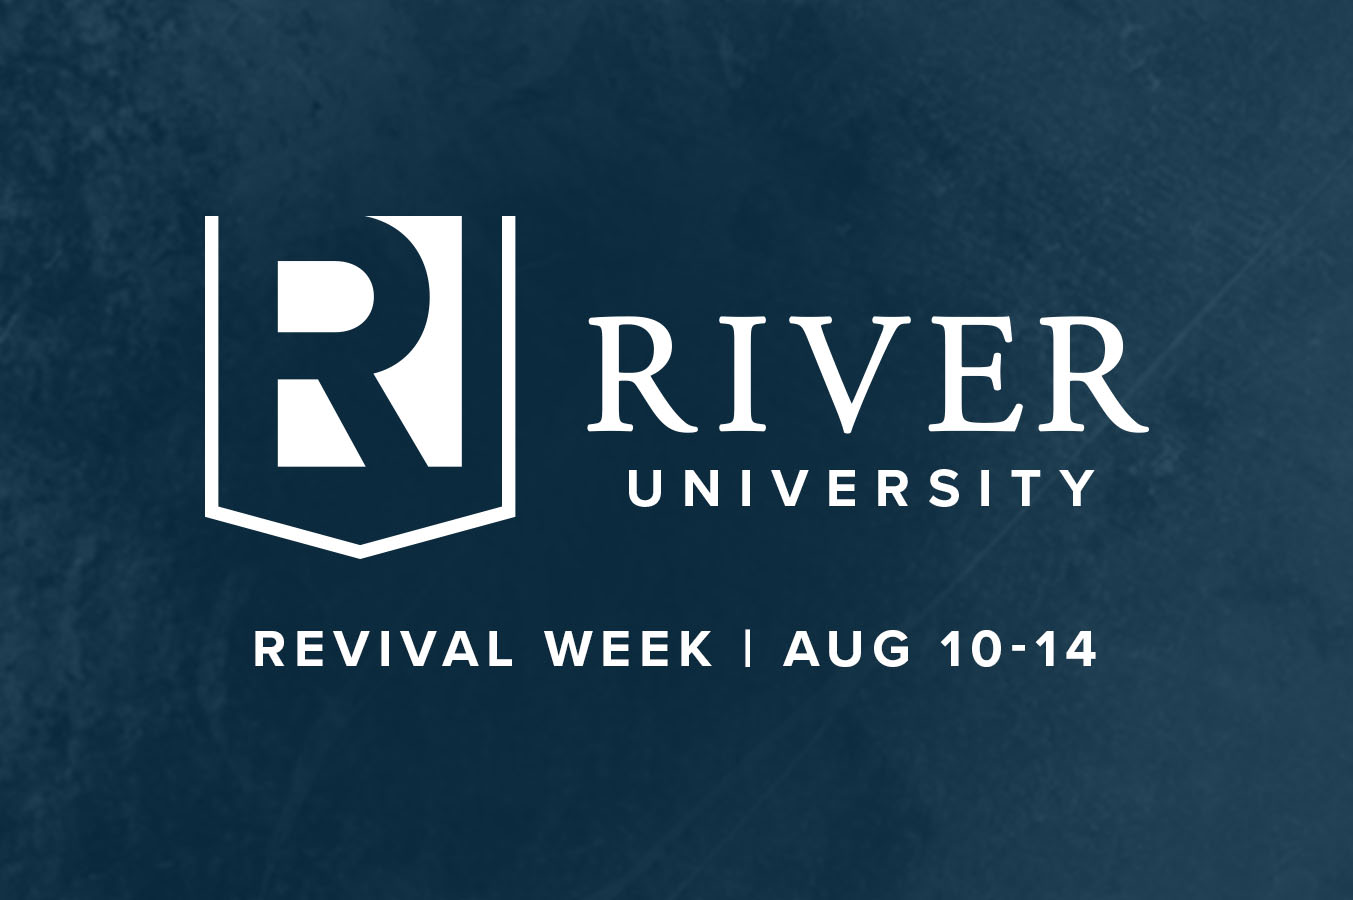 River University Revival Week